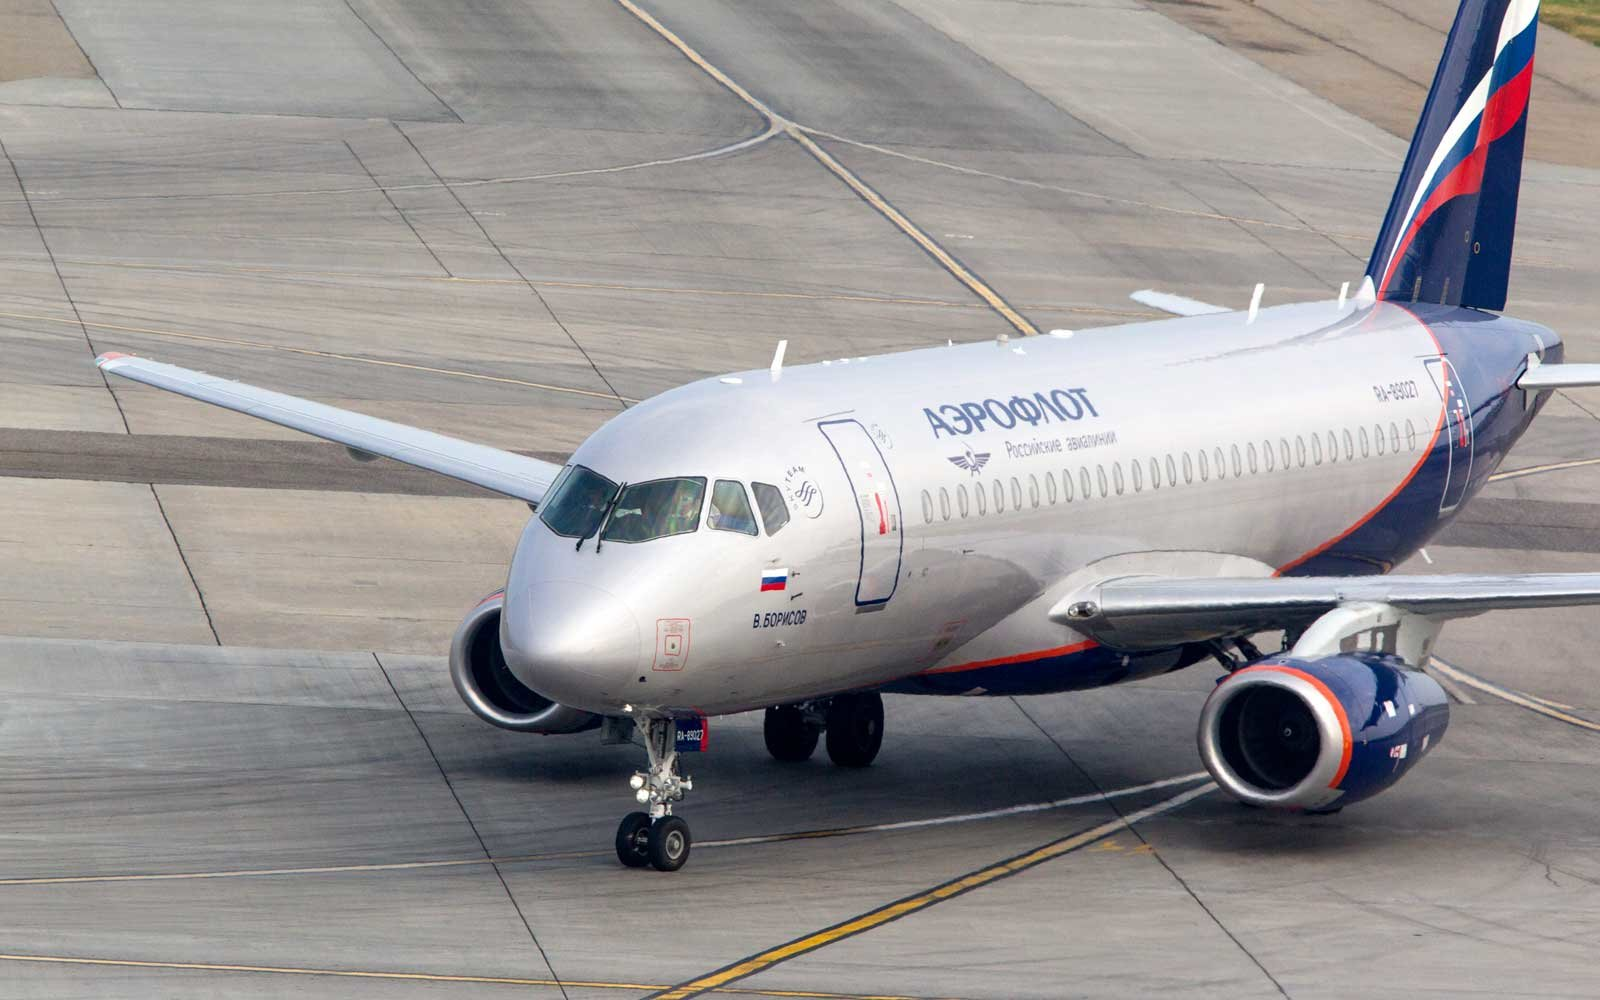 Drunk Passenger Breaks Flight Attendant's Leg After Being Told to Put Out Cigarette